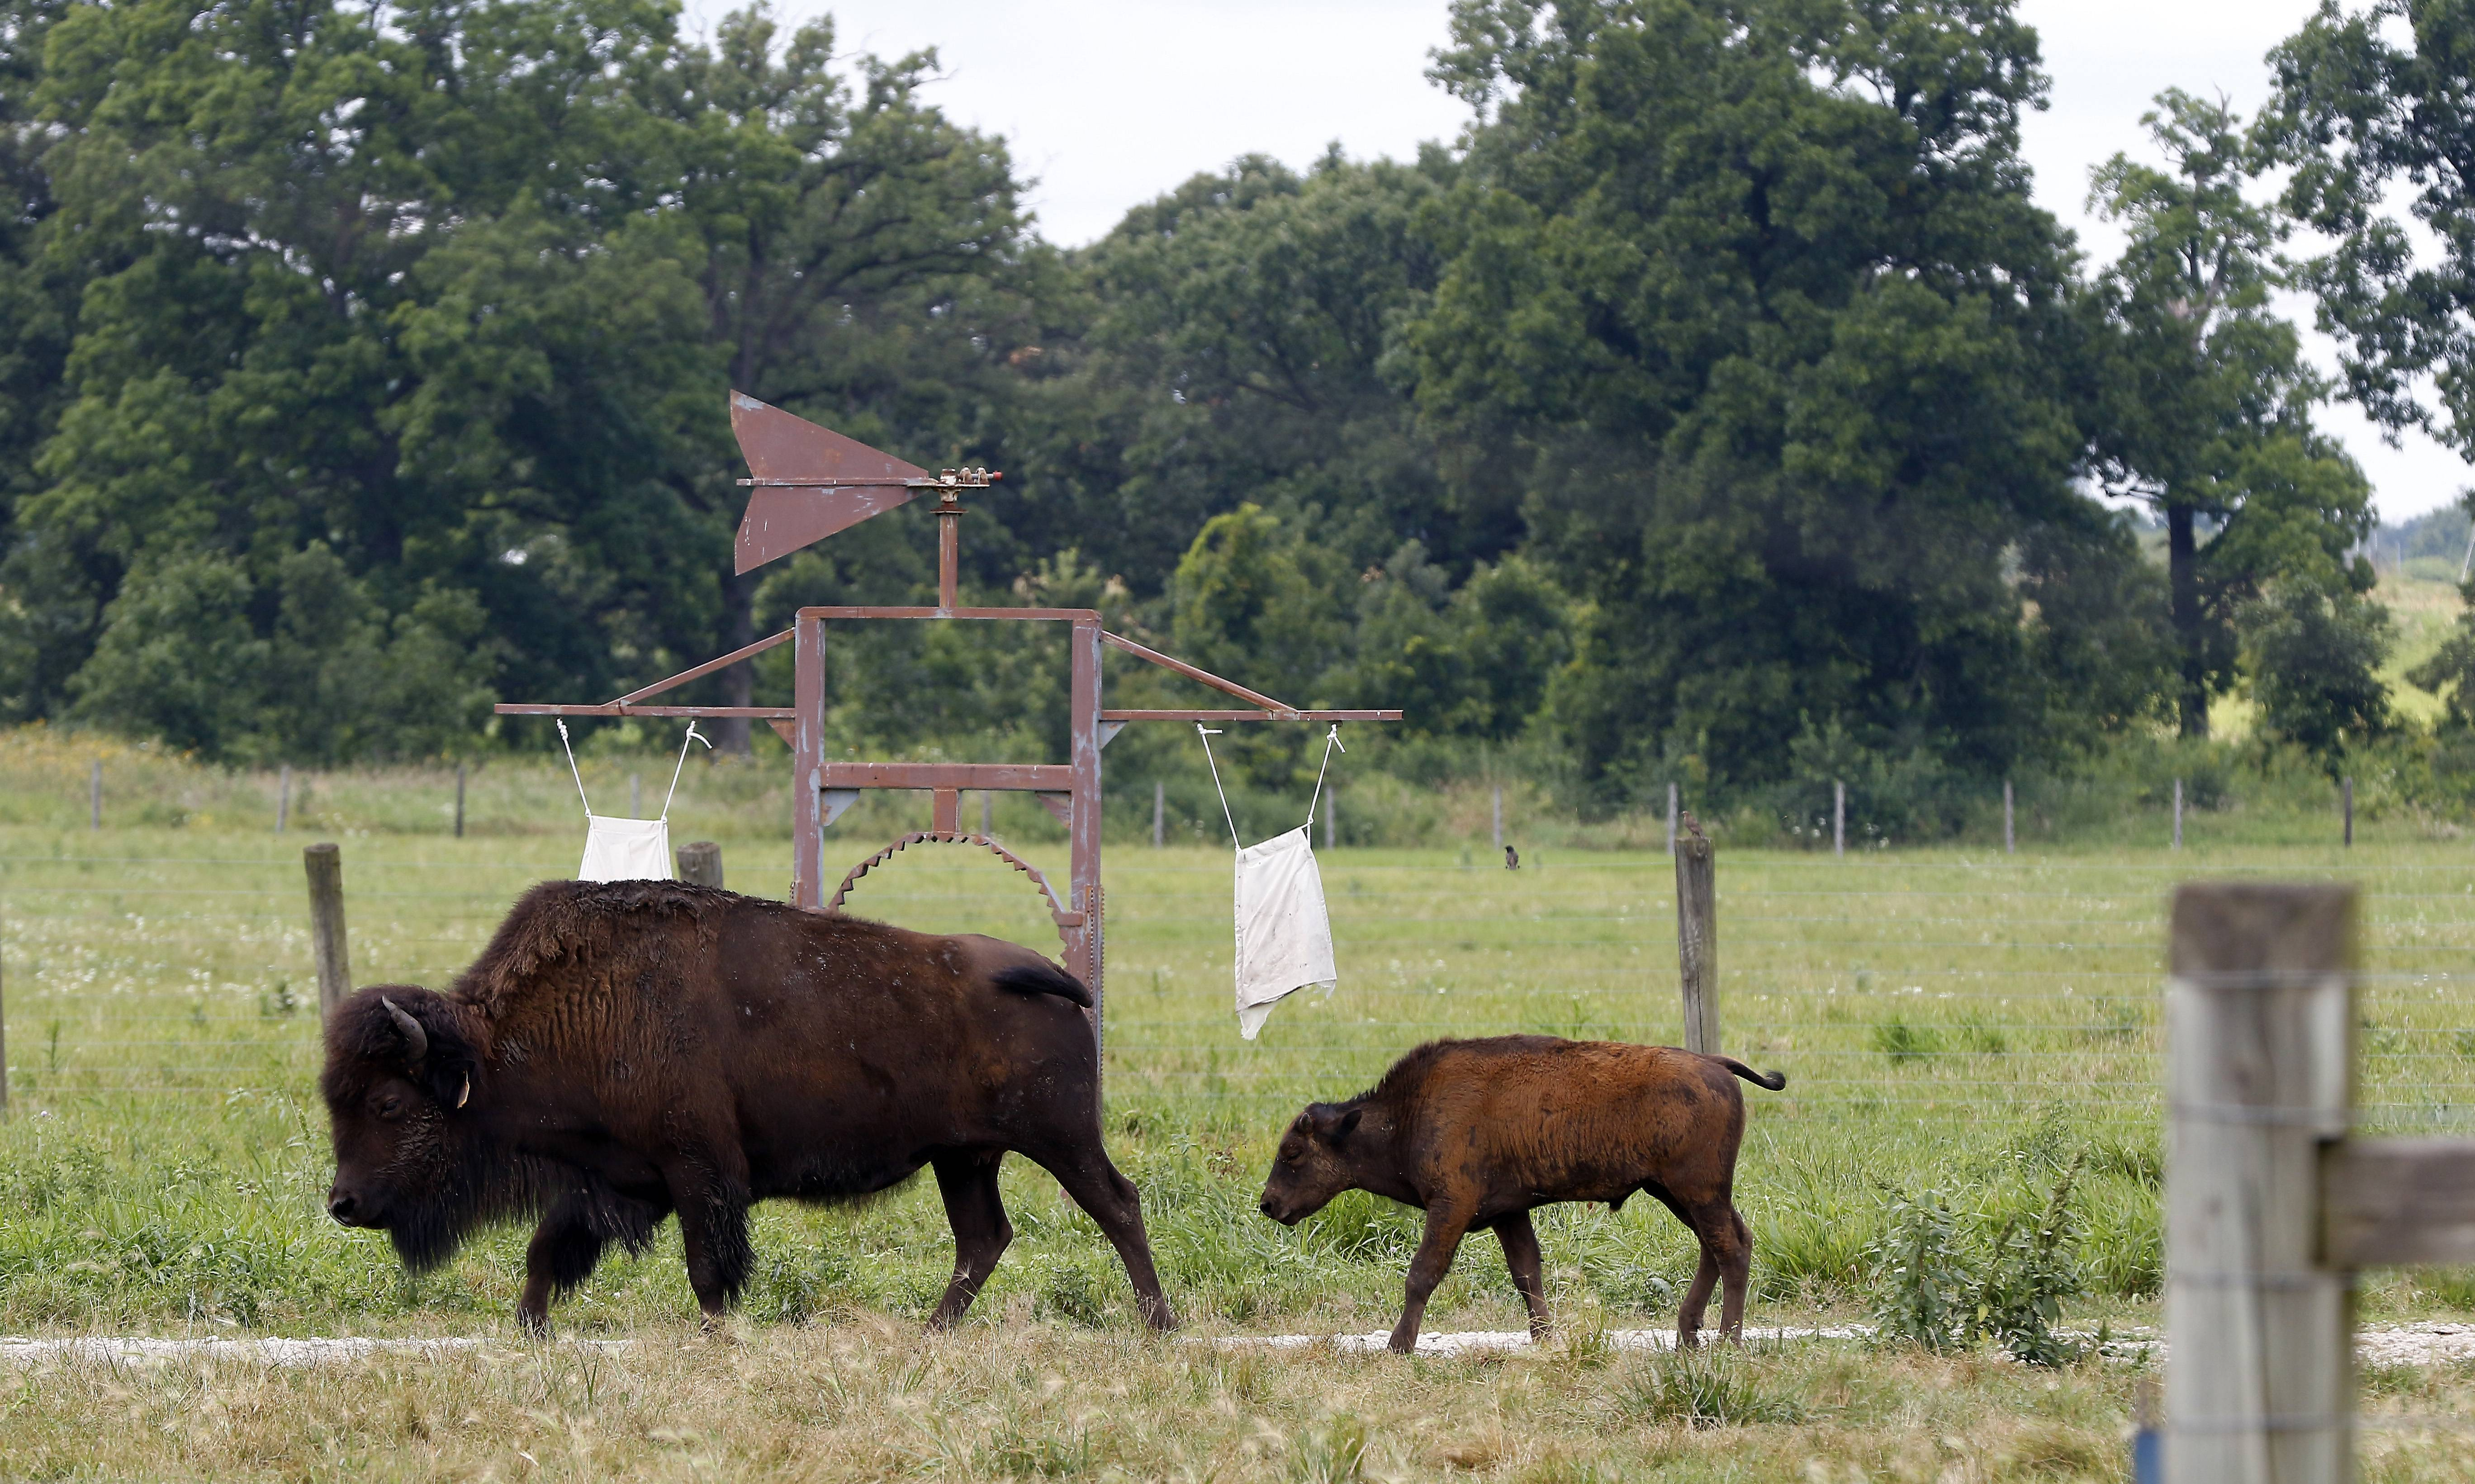 Bison head back to rest after feeding at Fermi National Accelerator Laboratory in Batavia.